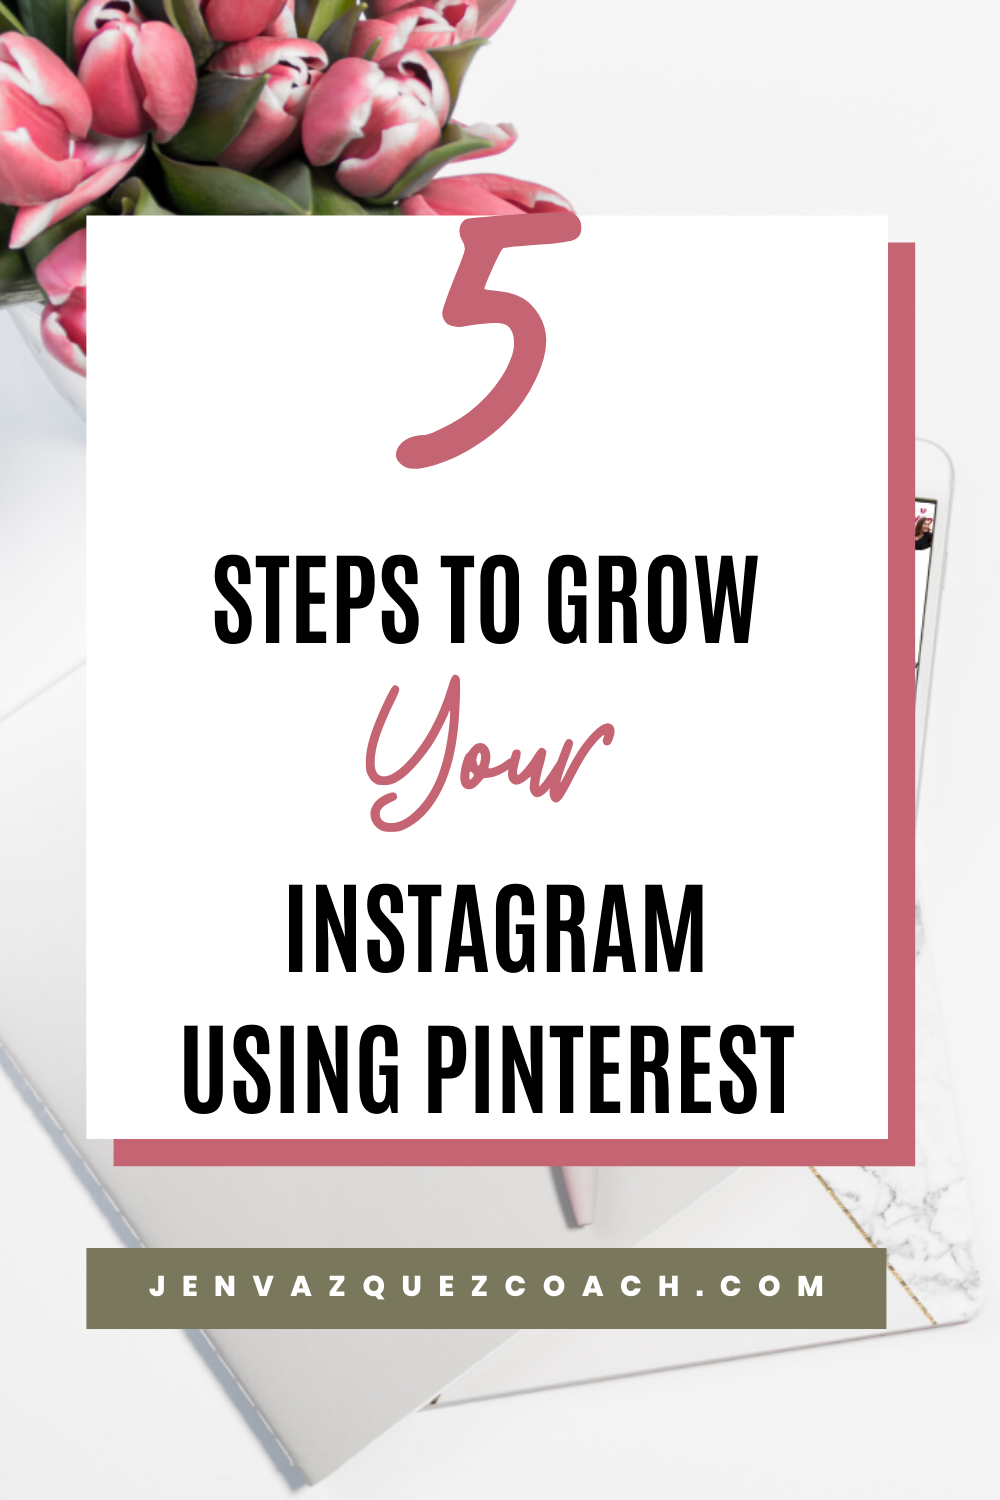 5 Steps to Grow Your Instagram Using Pinterest8